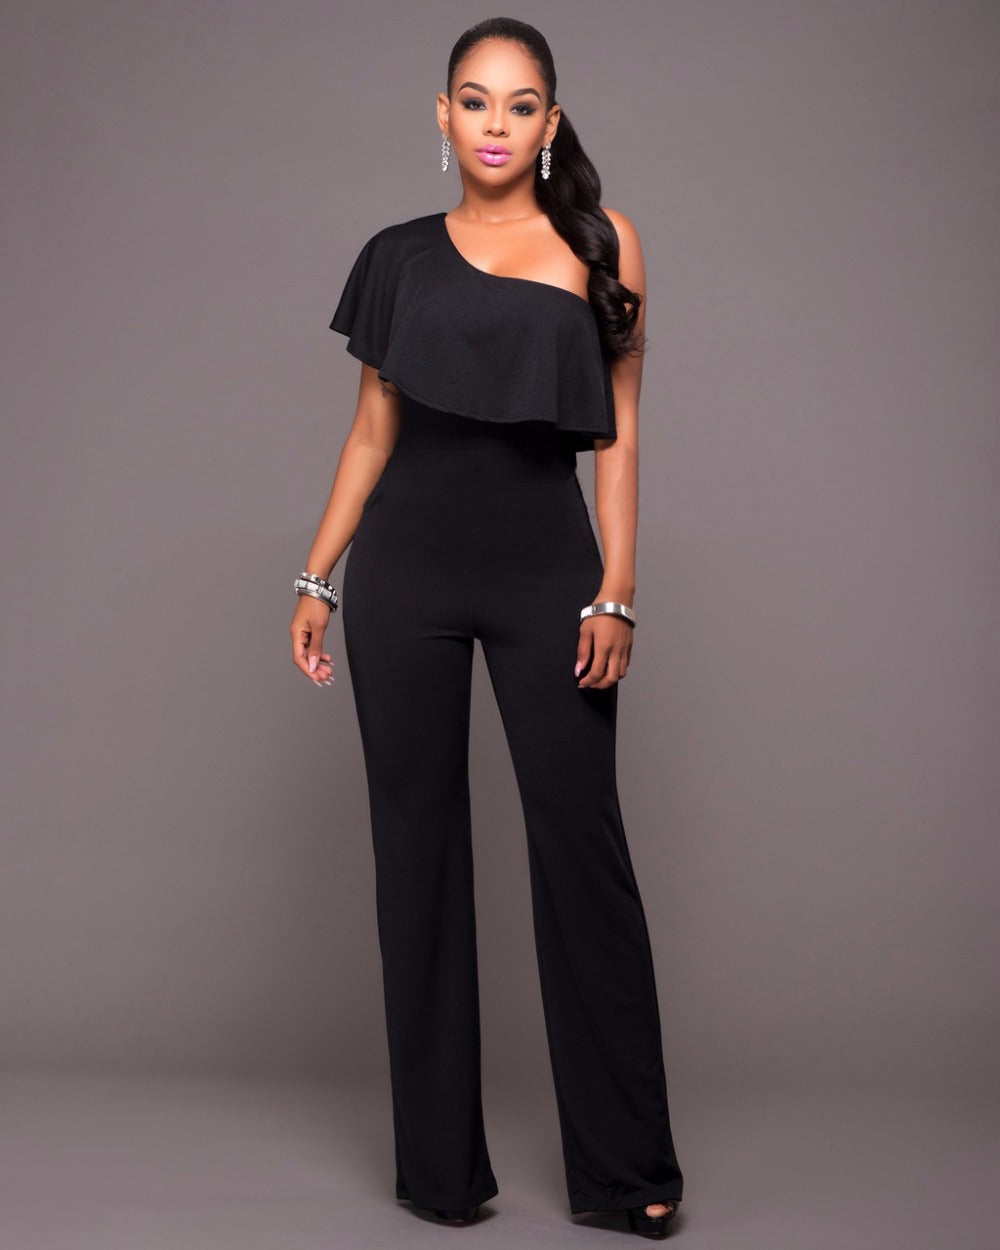 f1b2af1ddf36 Jessie Vinson Ruffles One Shoulder Jumpsuit Plus Size Sexy Solid Color  Sleeveless Rompers Women Jumpsuits Long Pants Playsuit